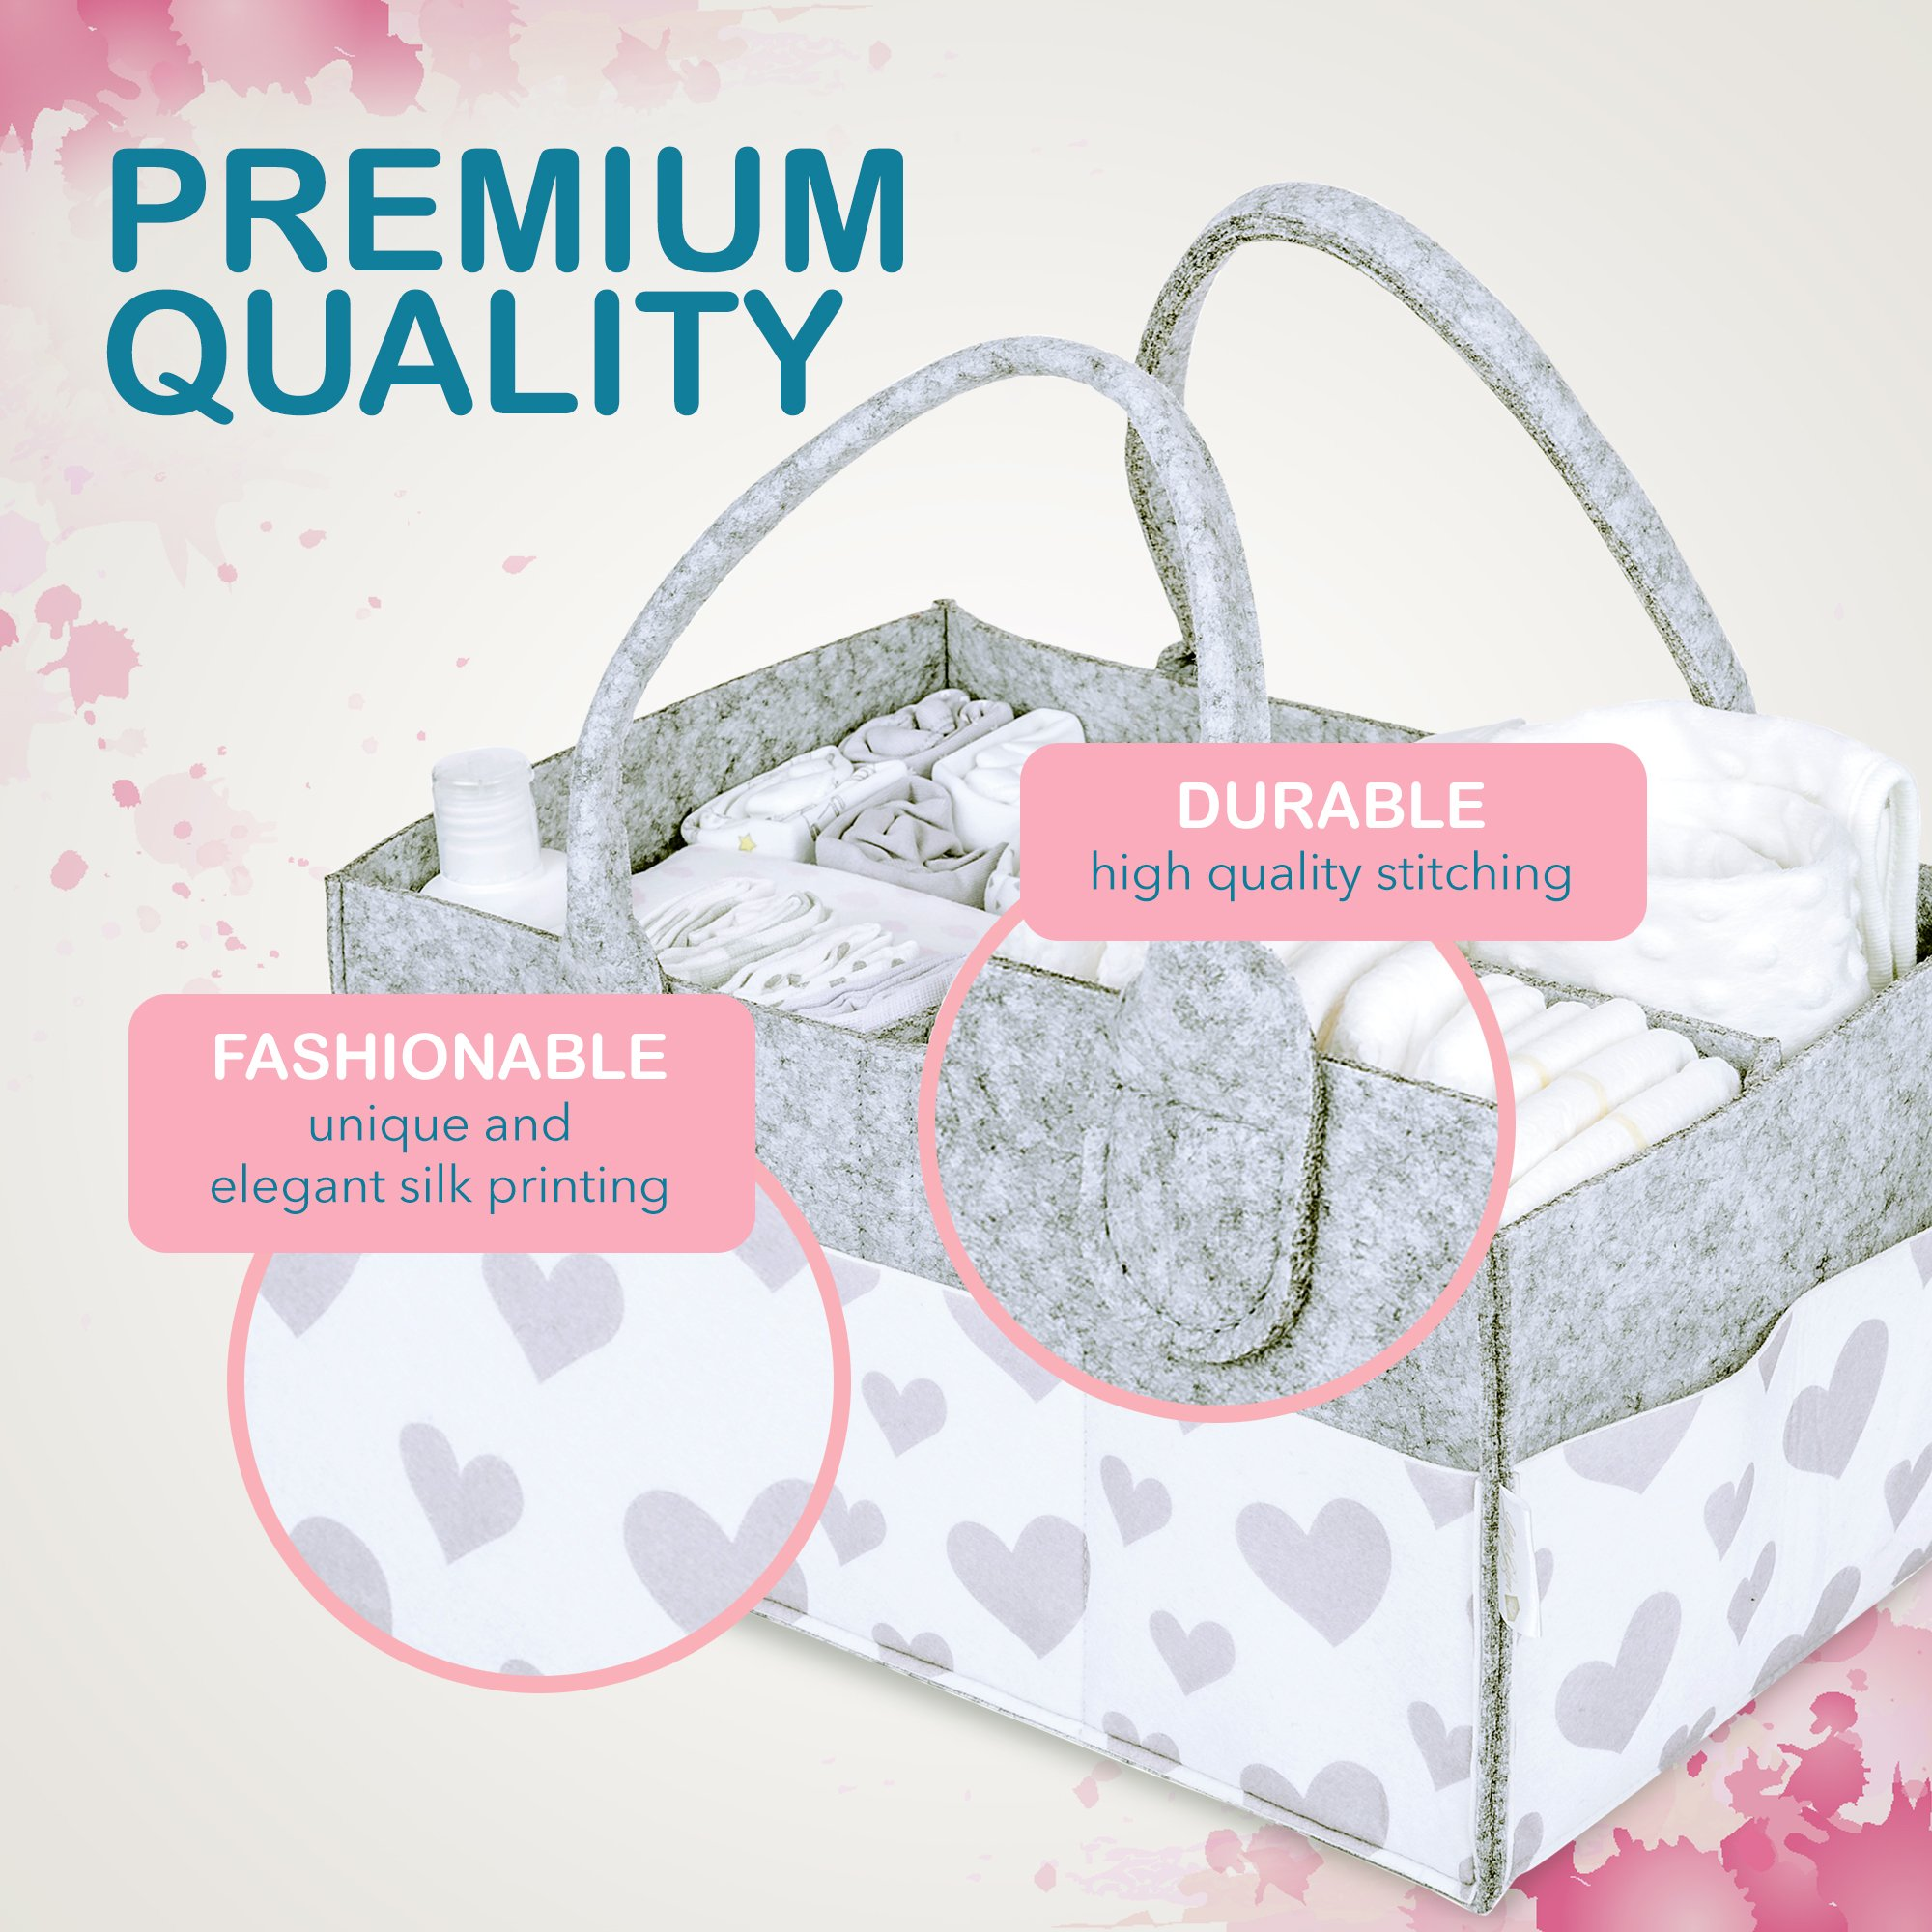 Baby Diaper Caddy and Toy Storage Basket | Portable Diaper Bag for Infants, Boys and Girls | Extra Sturdy & Large Nursery Organizer | Perfect Baby Shower Gift | Baby Registry Must Haves by Littlegem4U (Image #4)